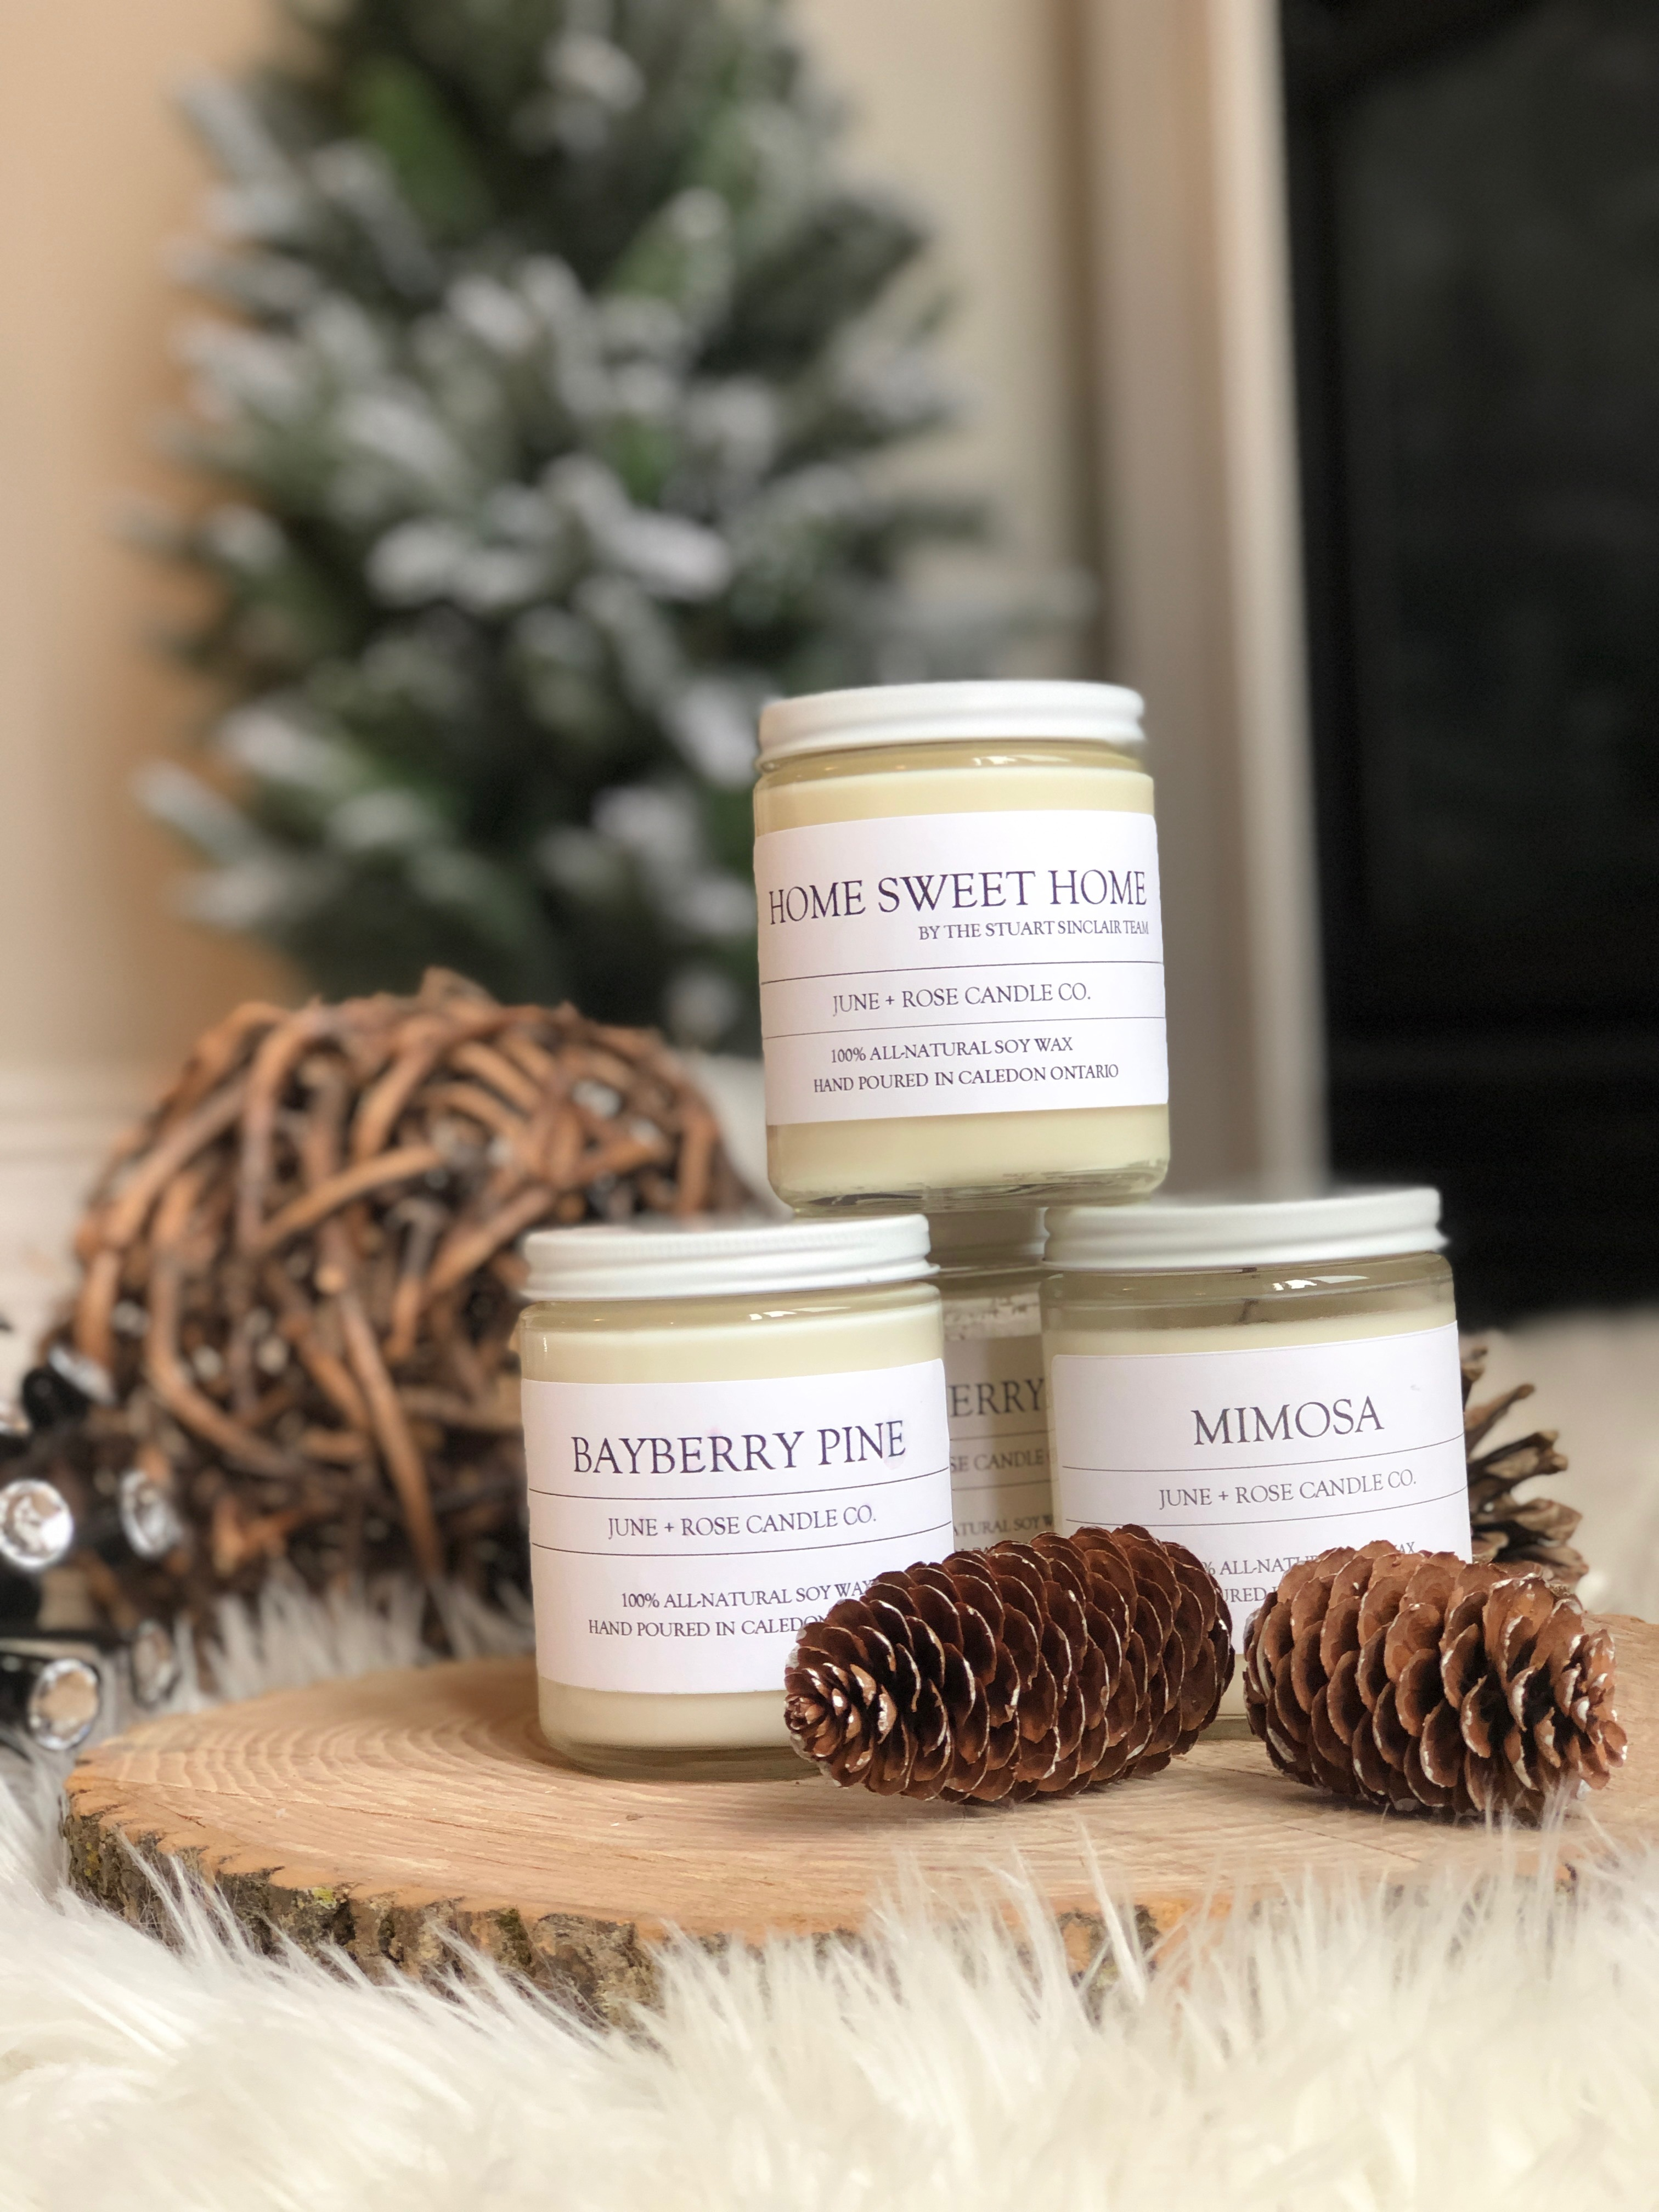 June and Rose Candle co